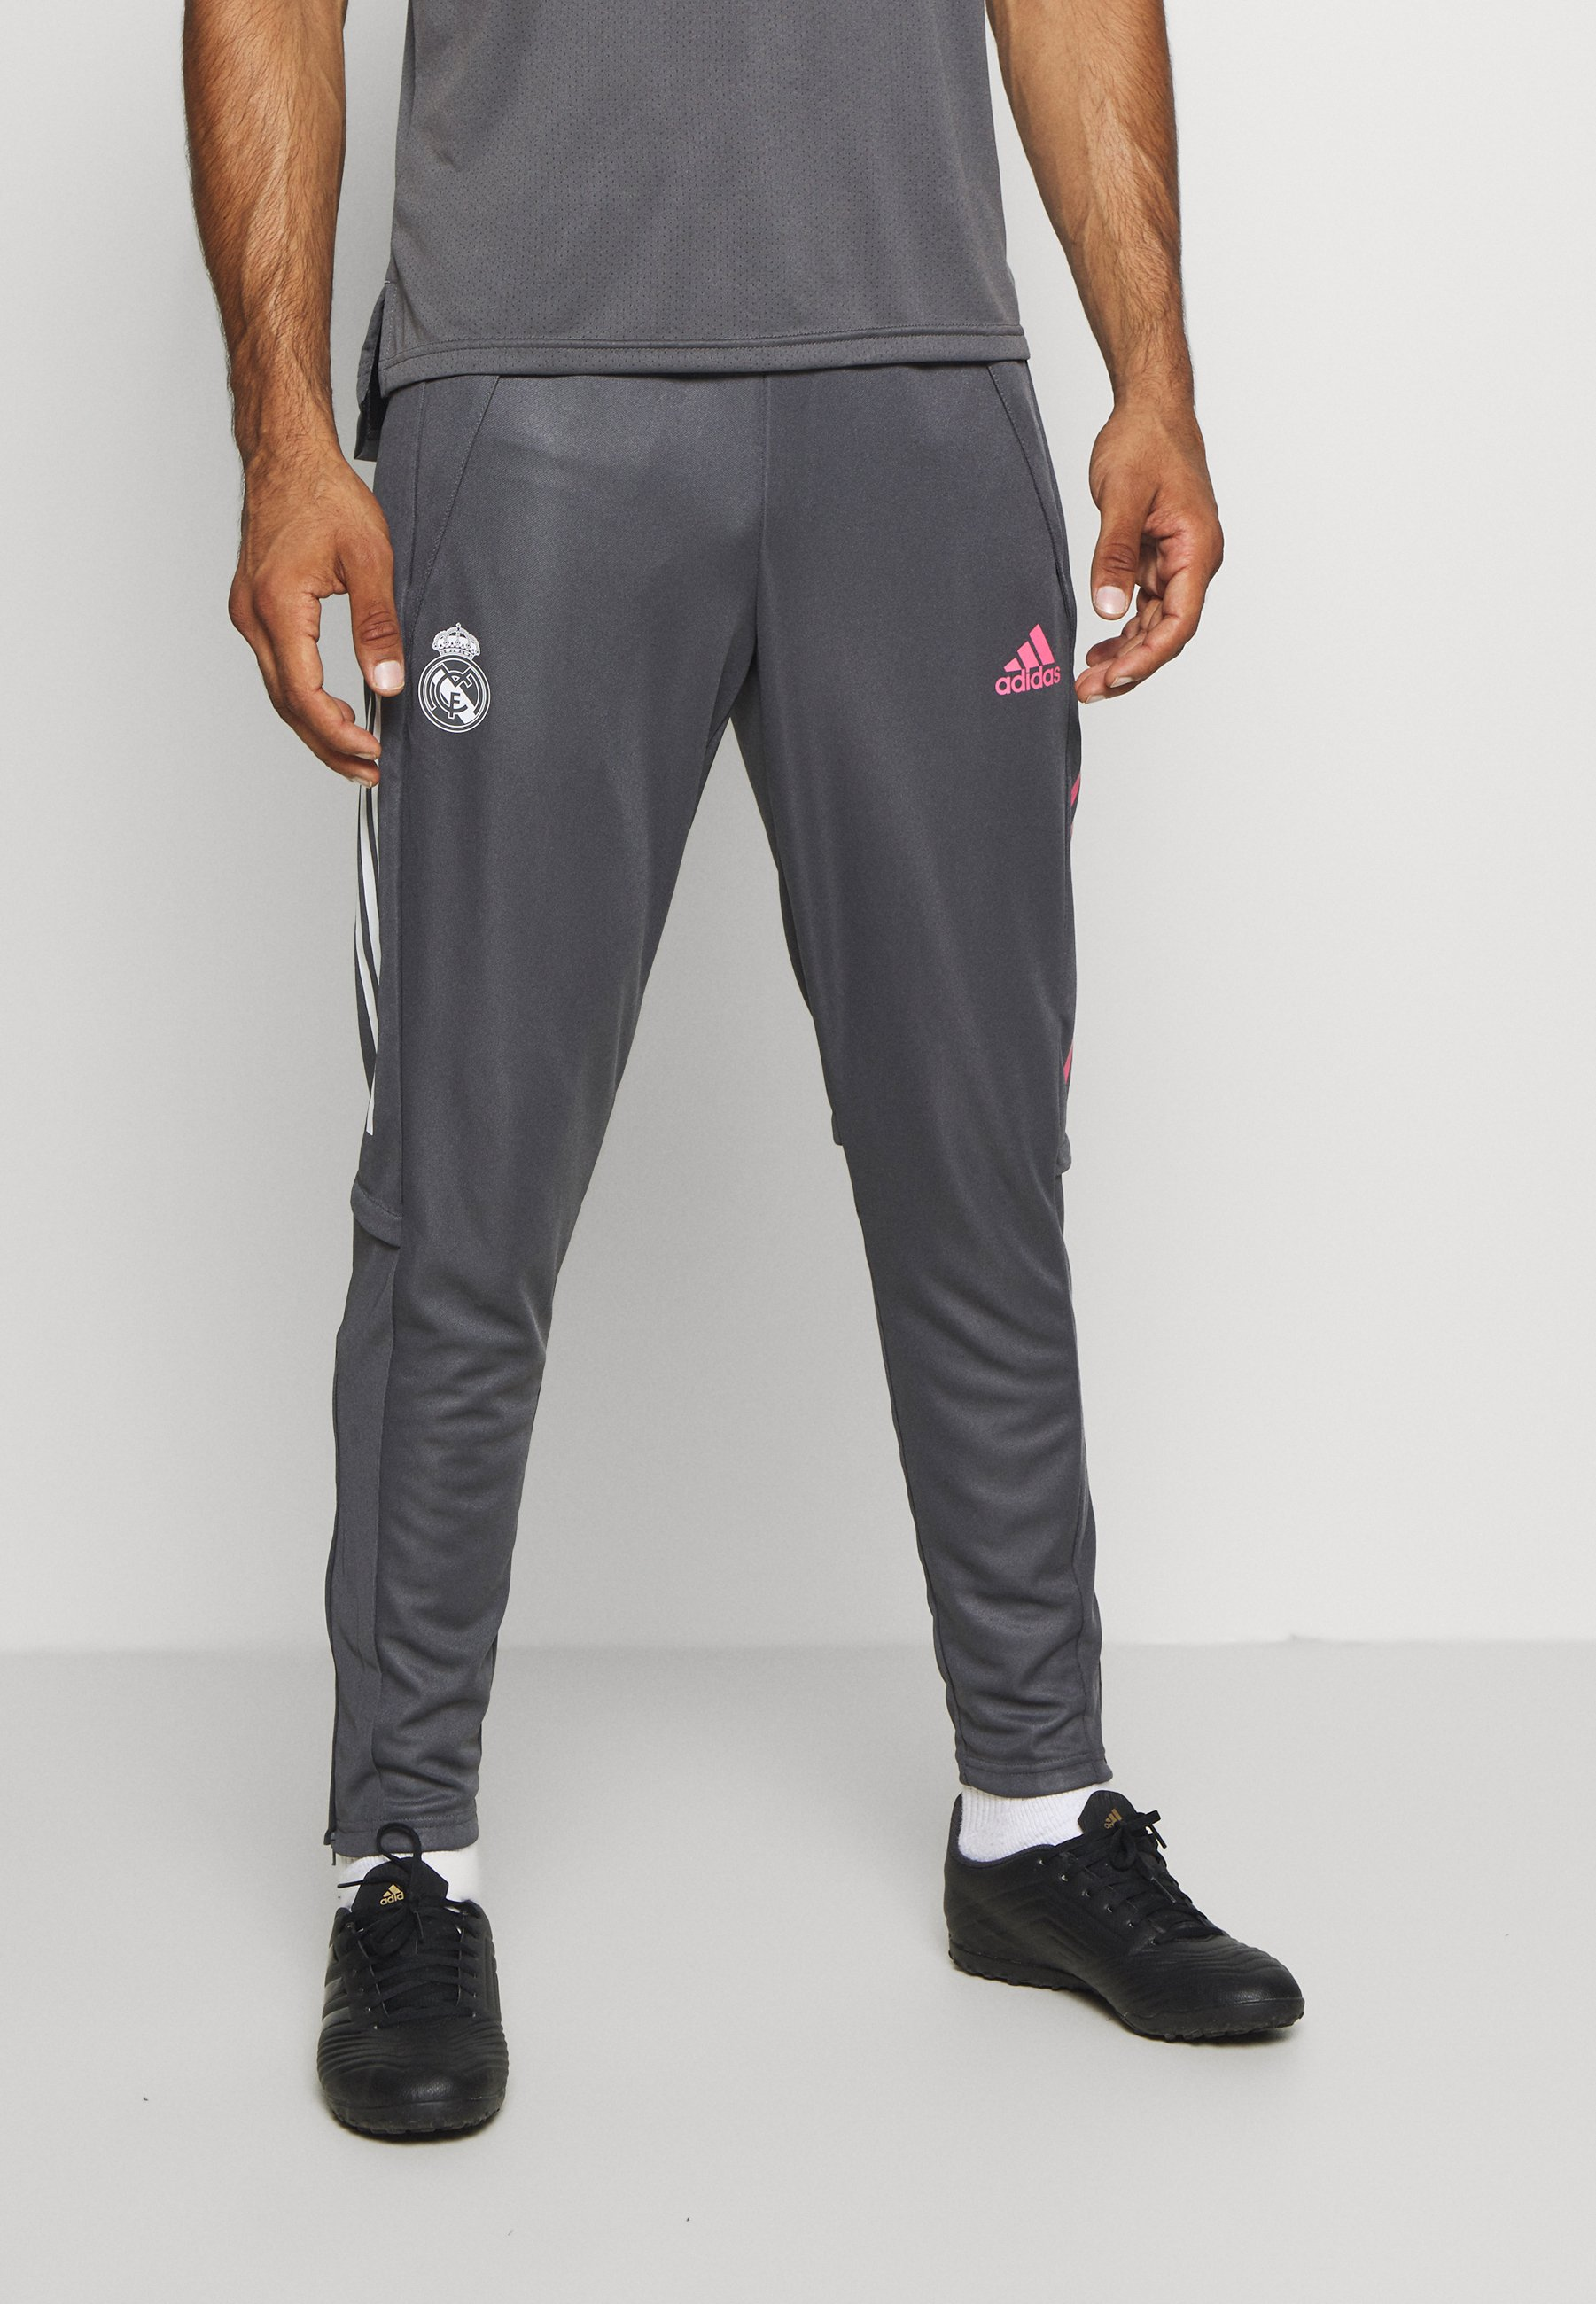 REAL MADRID AEROREADY SPORTS FOOTBALL PANTS Vereinsmannschaften grey